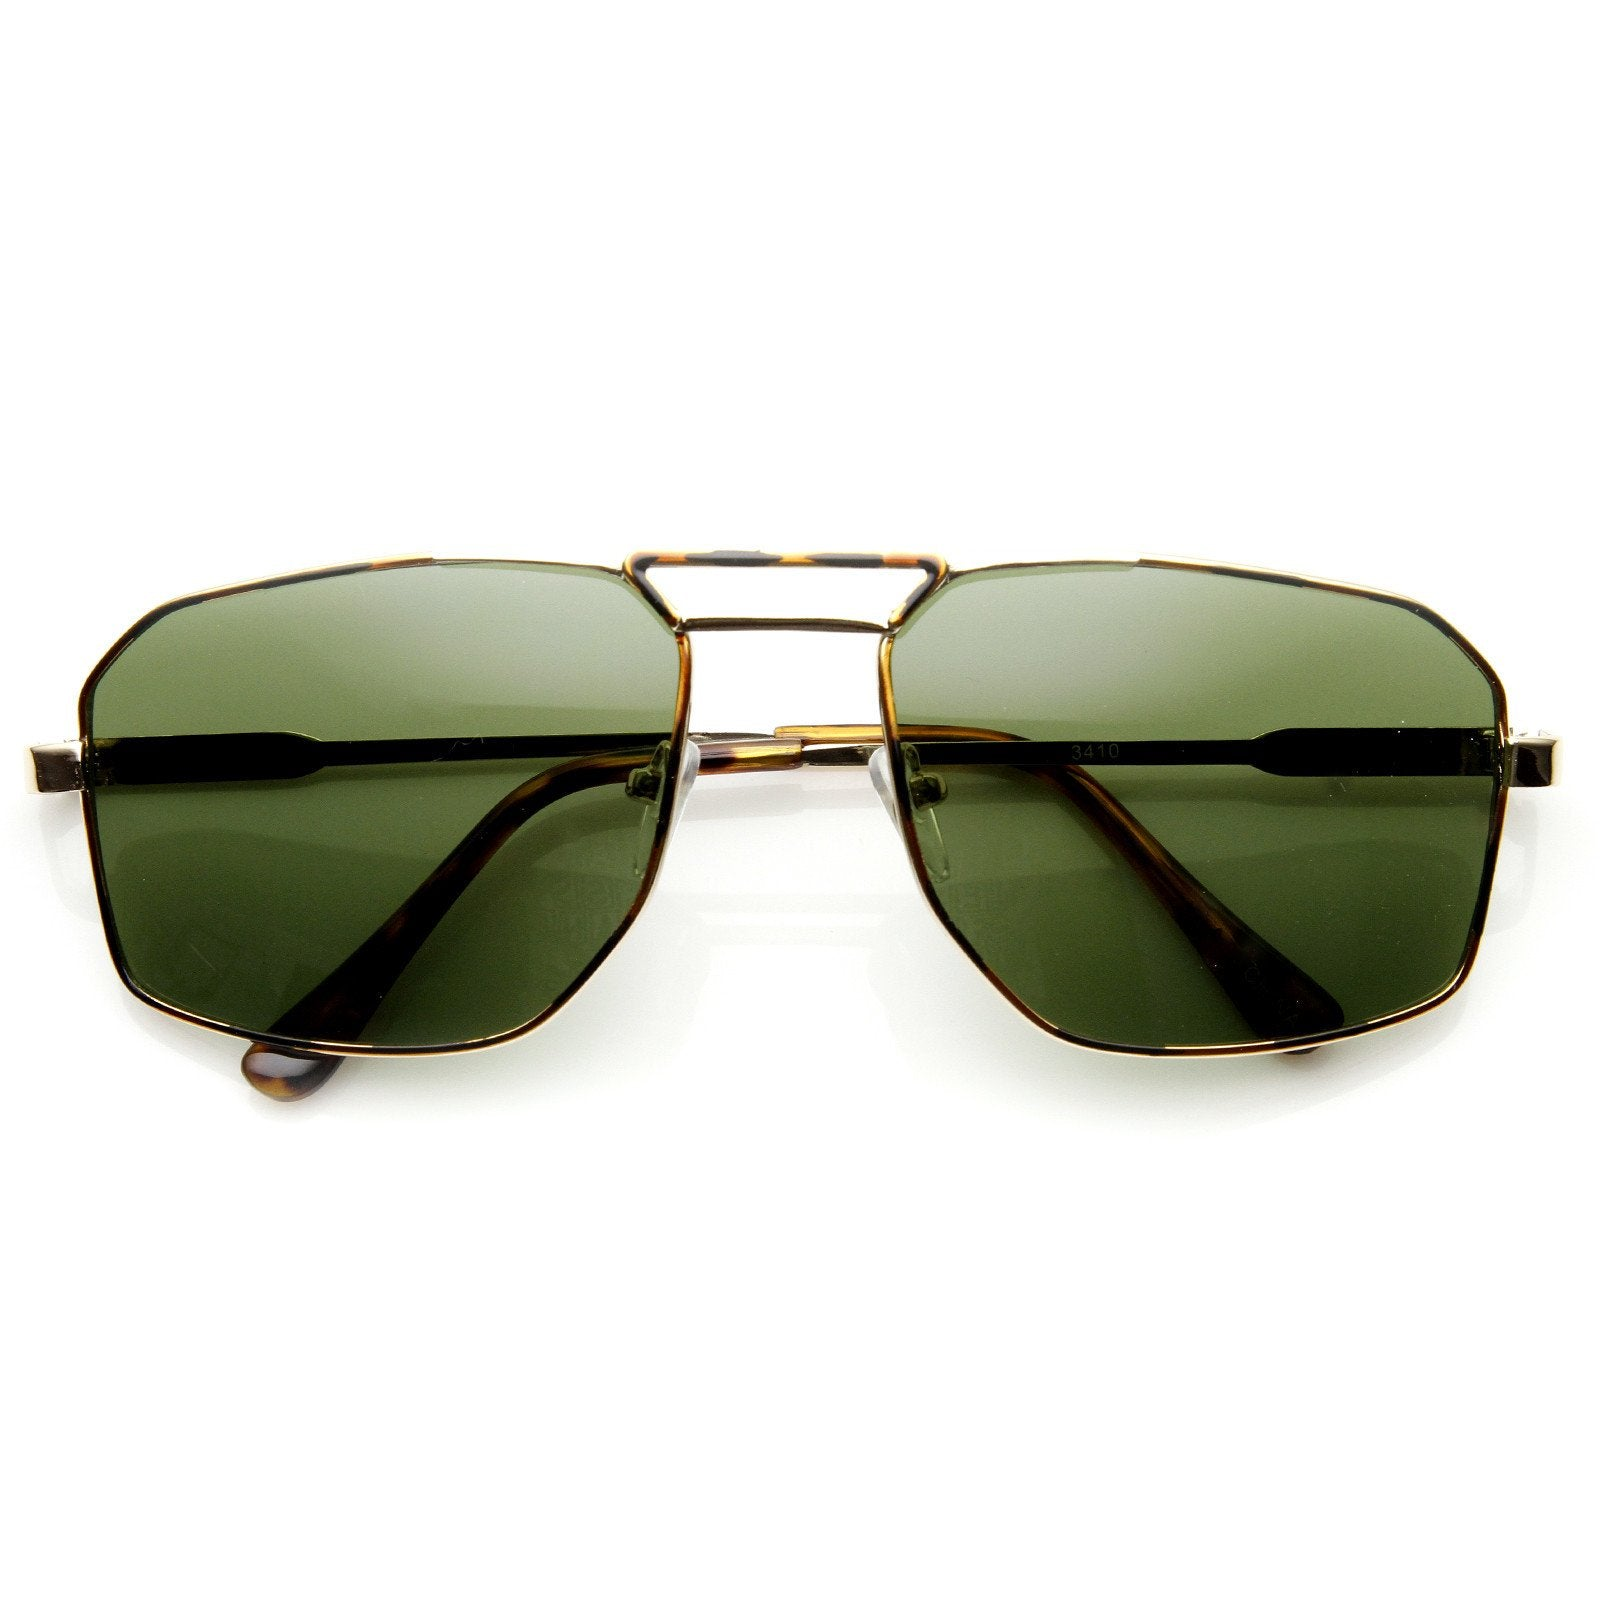 7eeeff6394540 ... Modern Mens Fashion GQ Square Metal Aviator Sunglasses 8989 · Gold  Tortoise Green